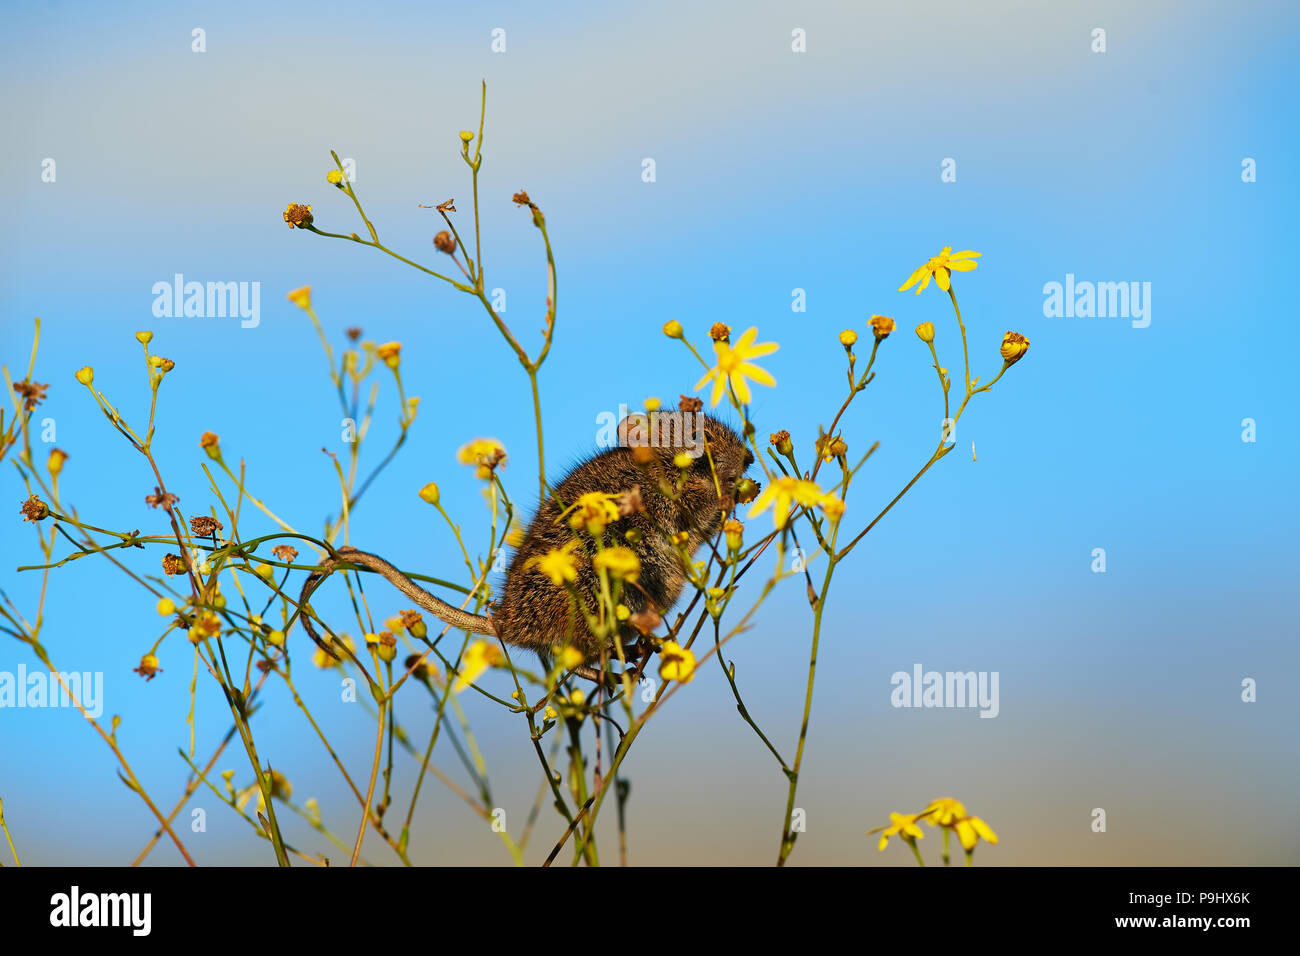 Striped Mouse feeding on Chrysanthemoides flower - Stock Image